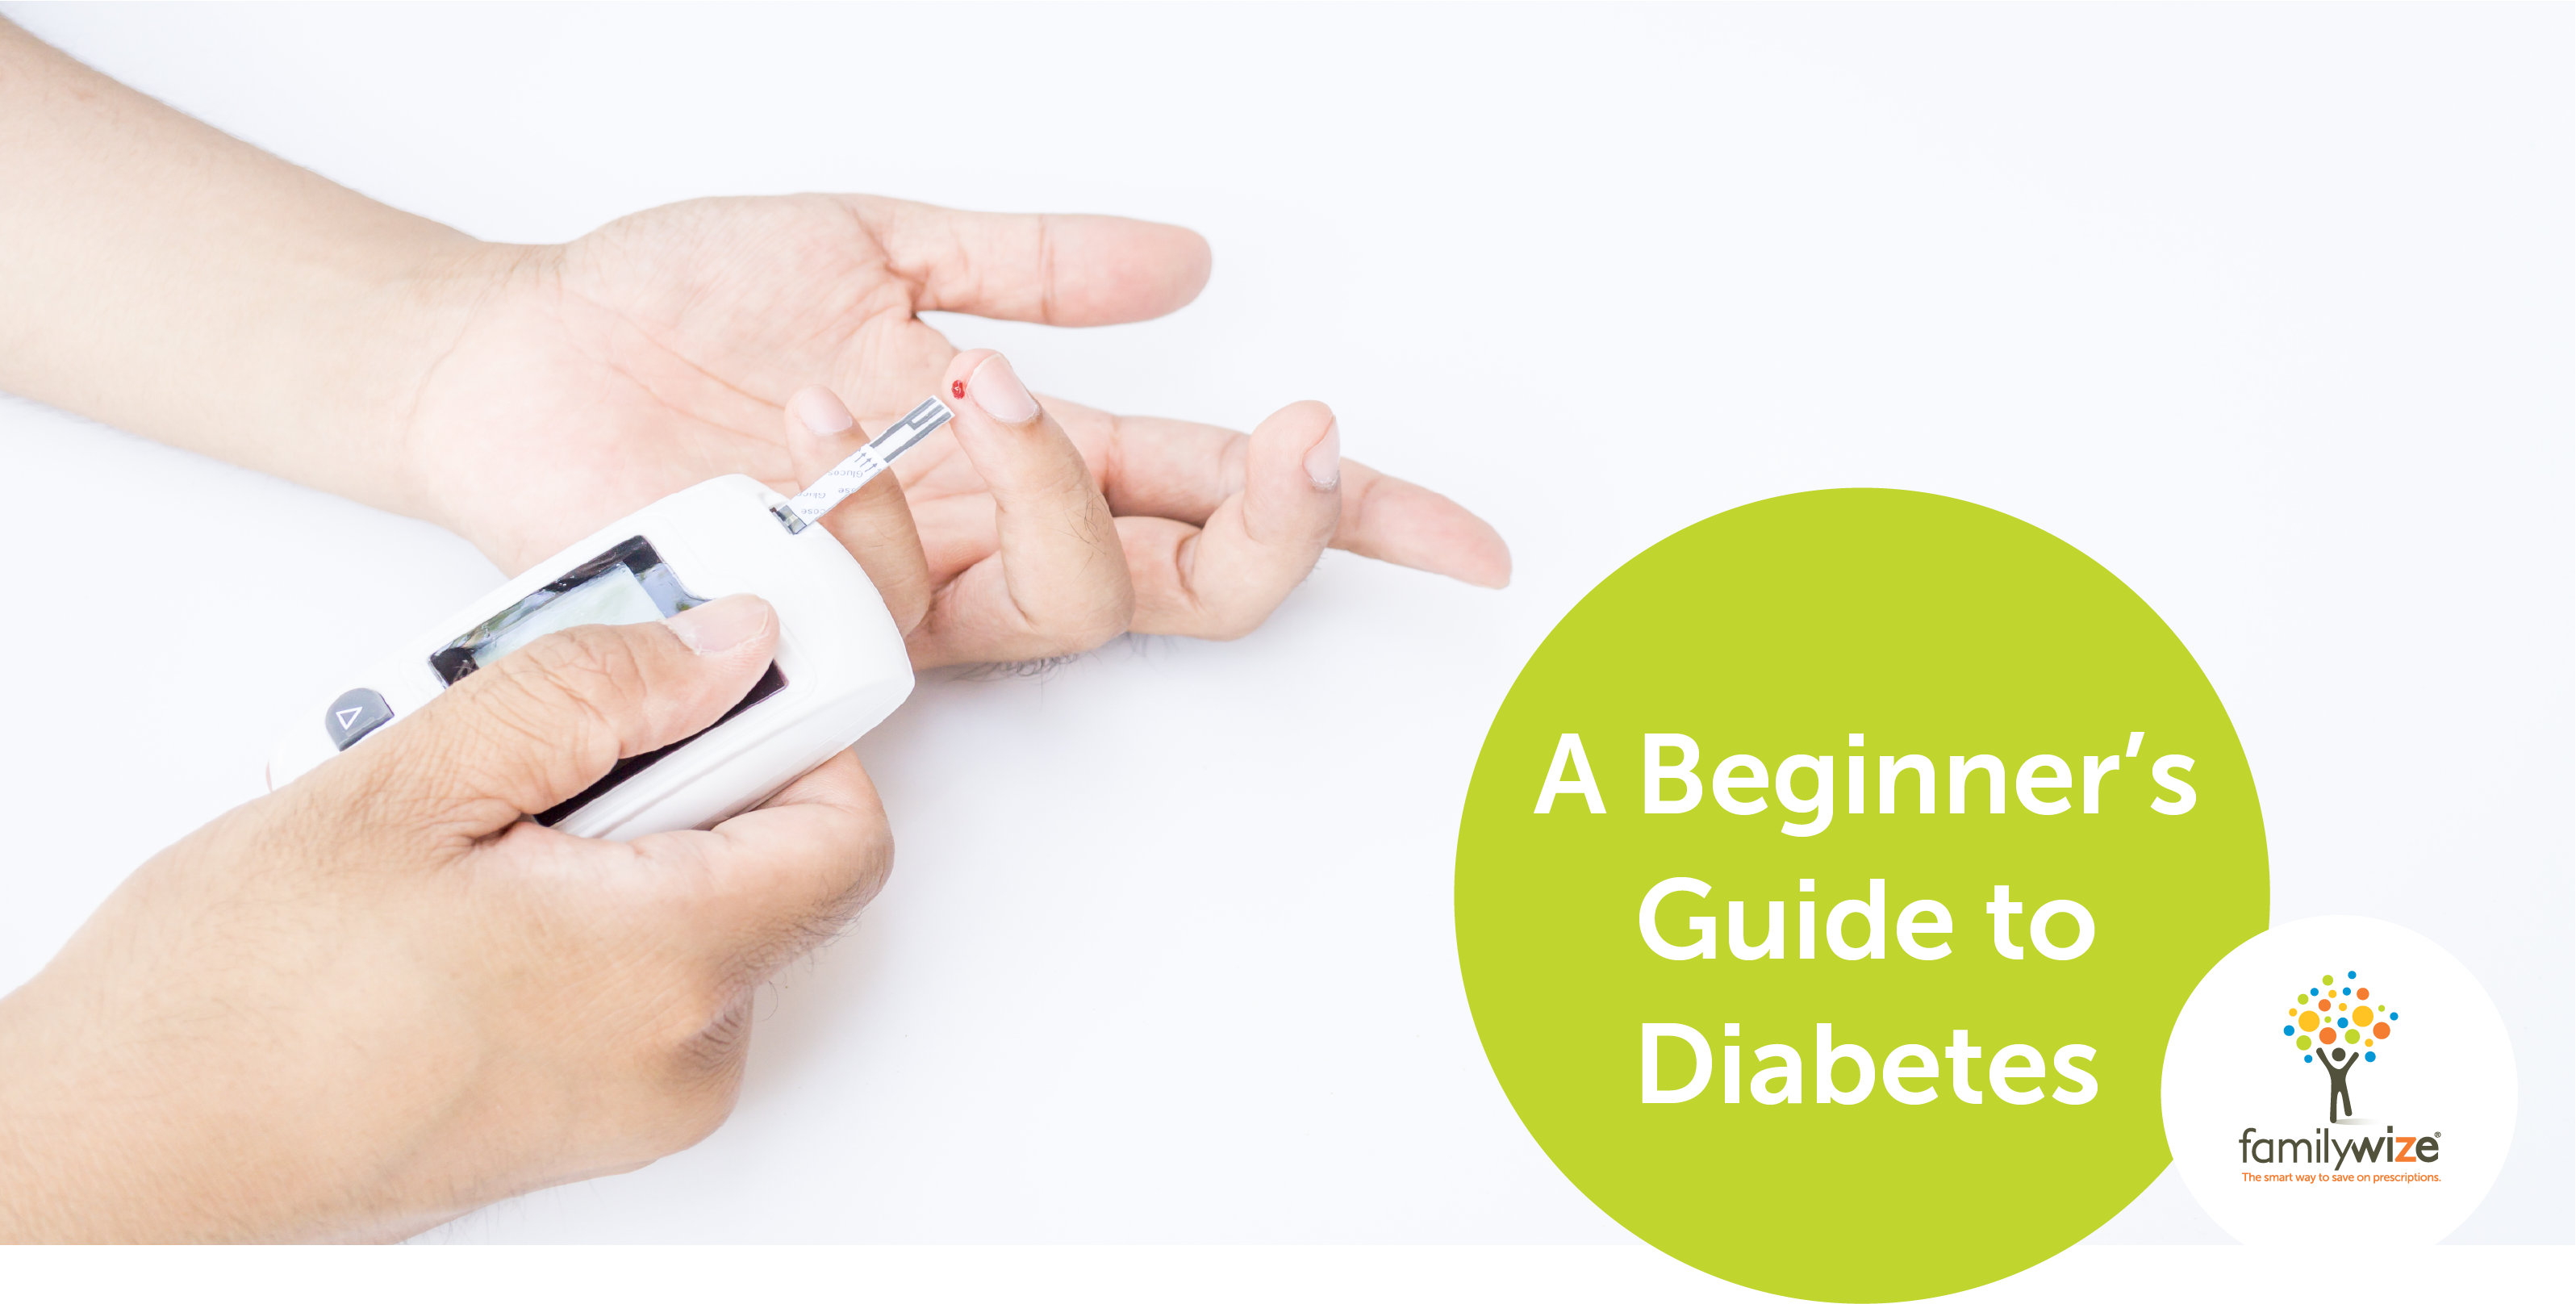 A Beginner's Guide to Diabetes